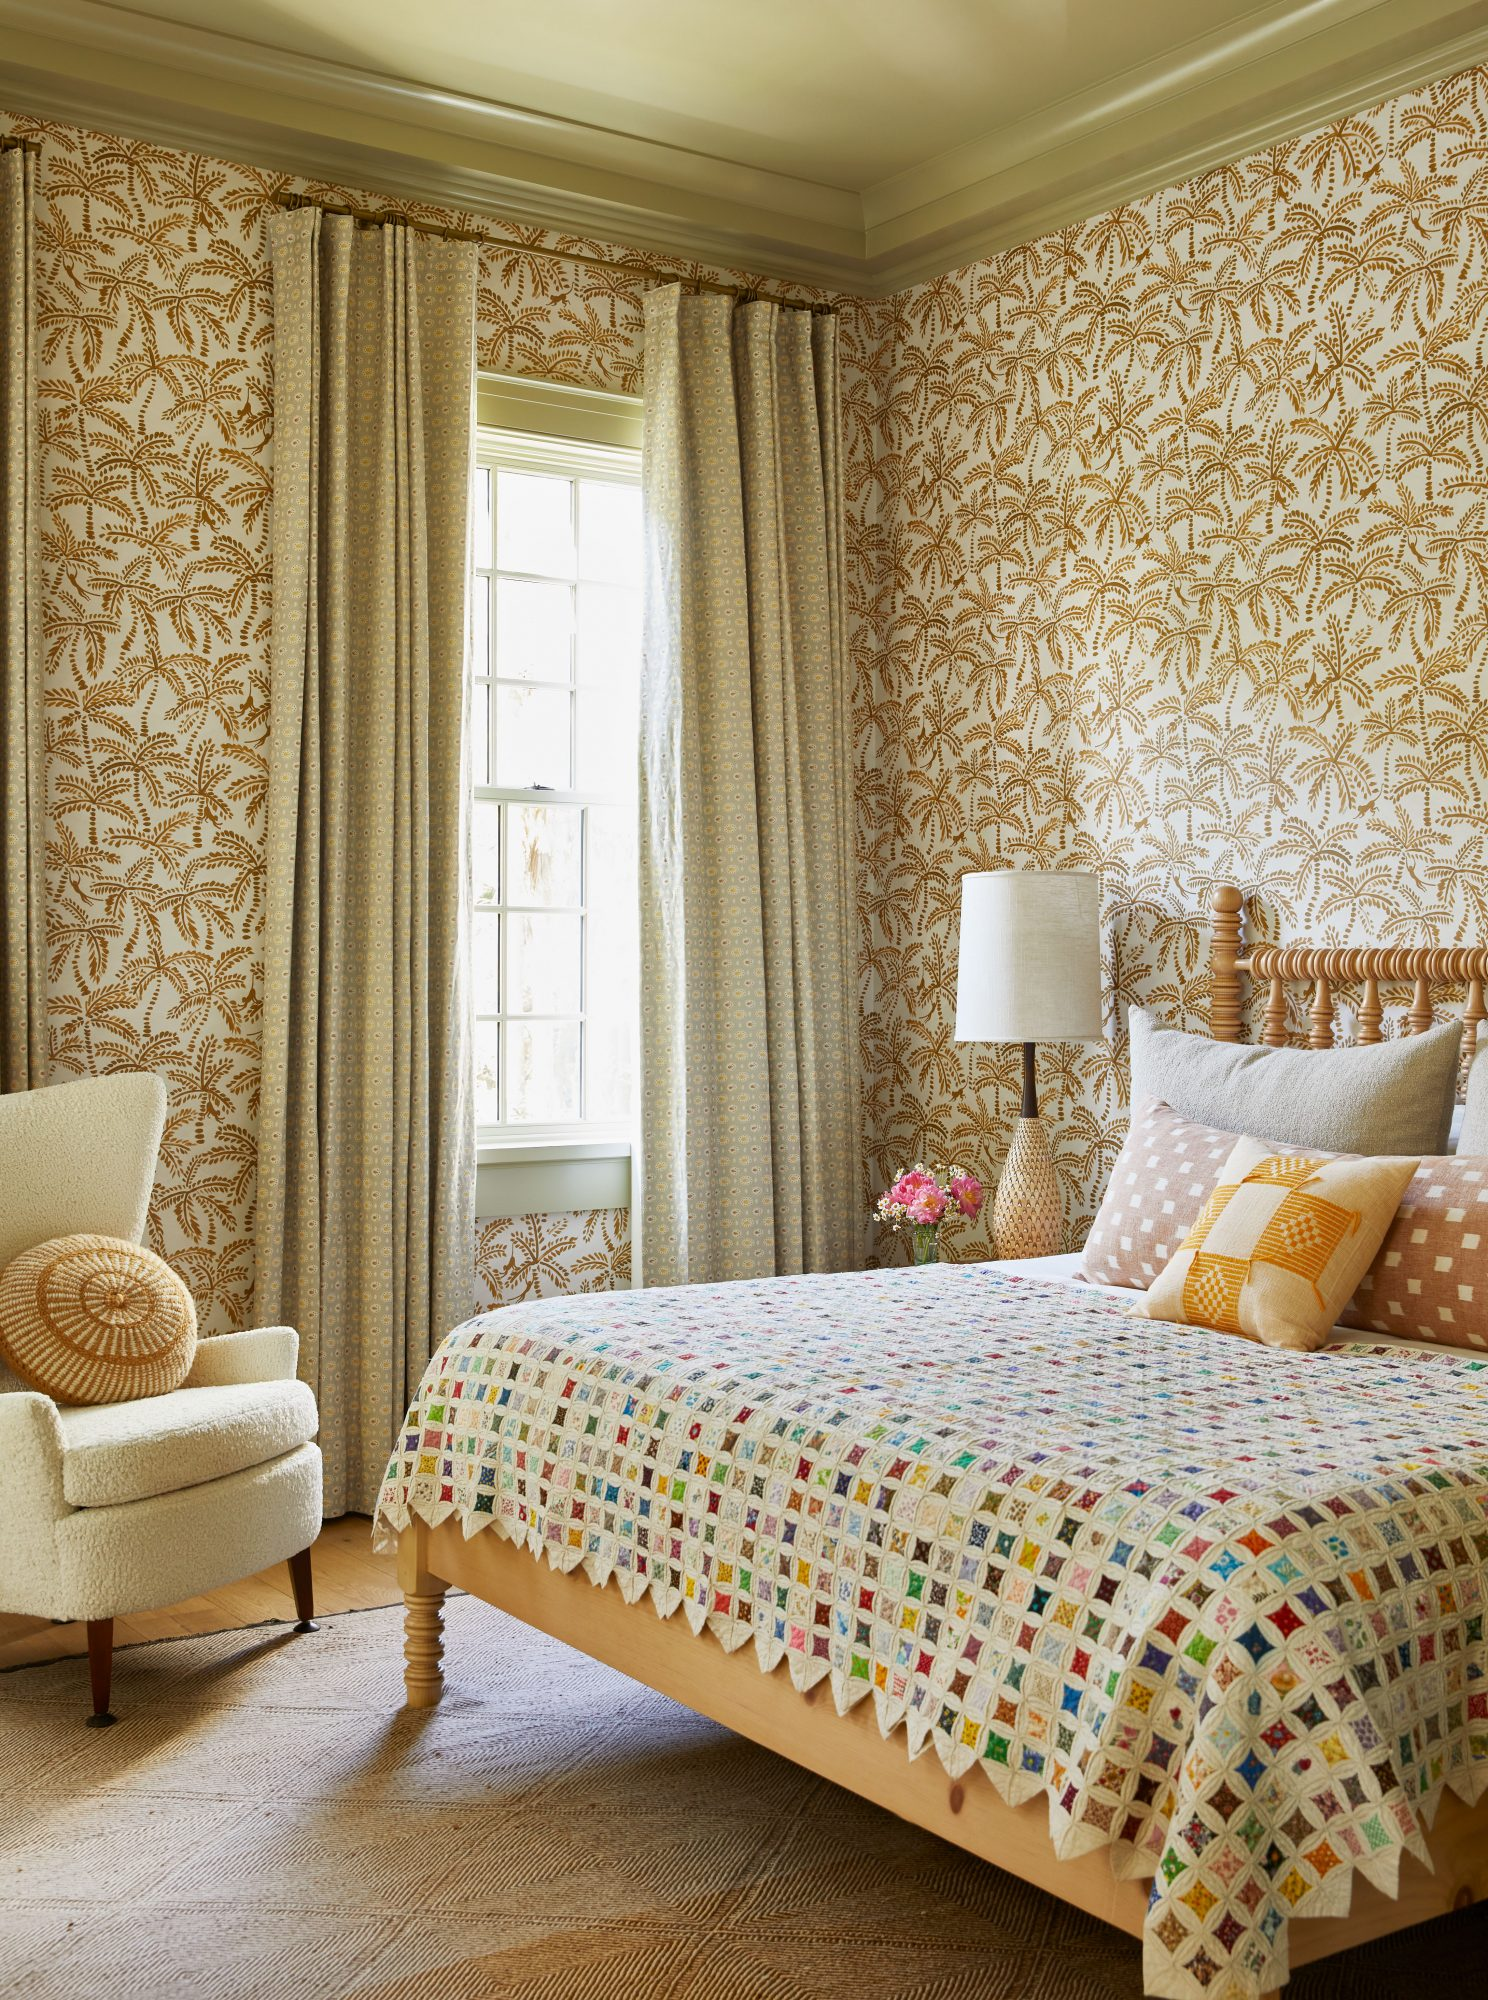 Coastal Guest Bedroom with Lots of Neutral Patterns